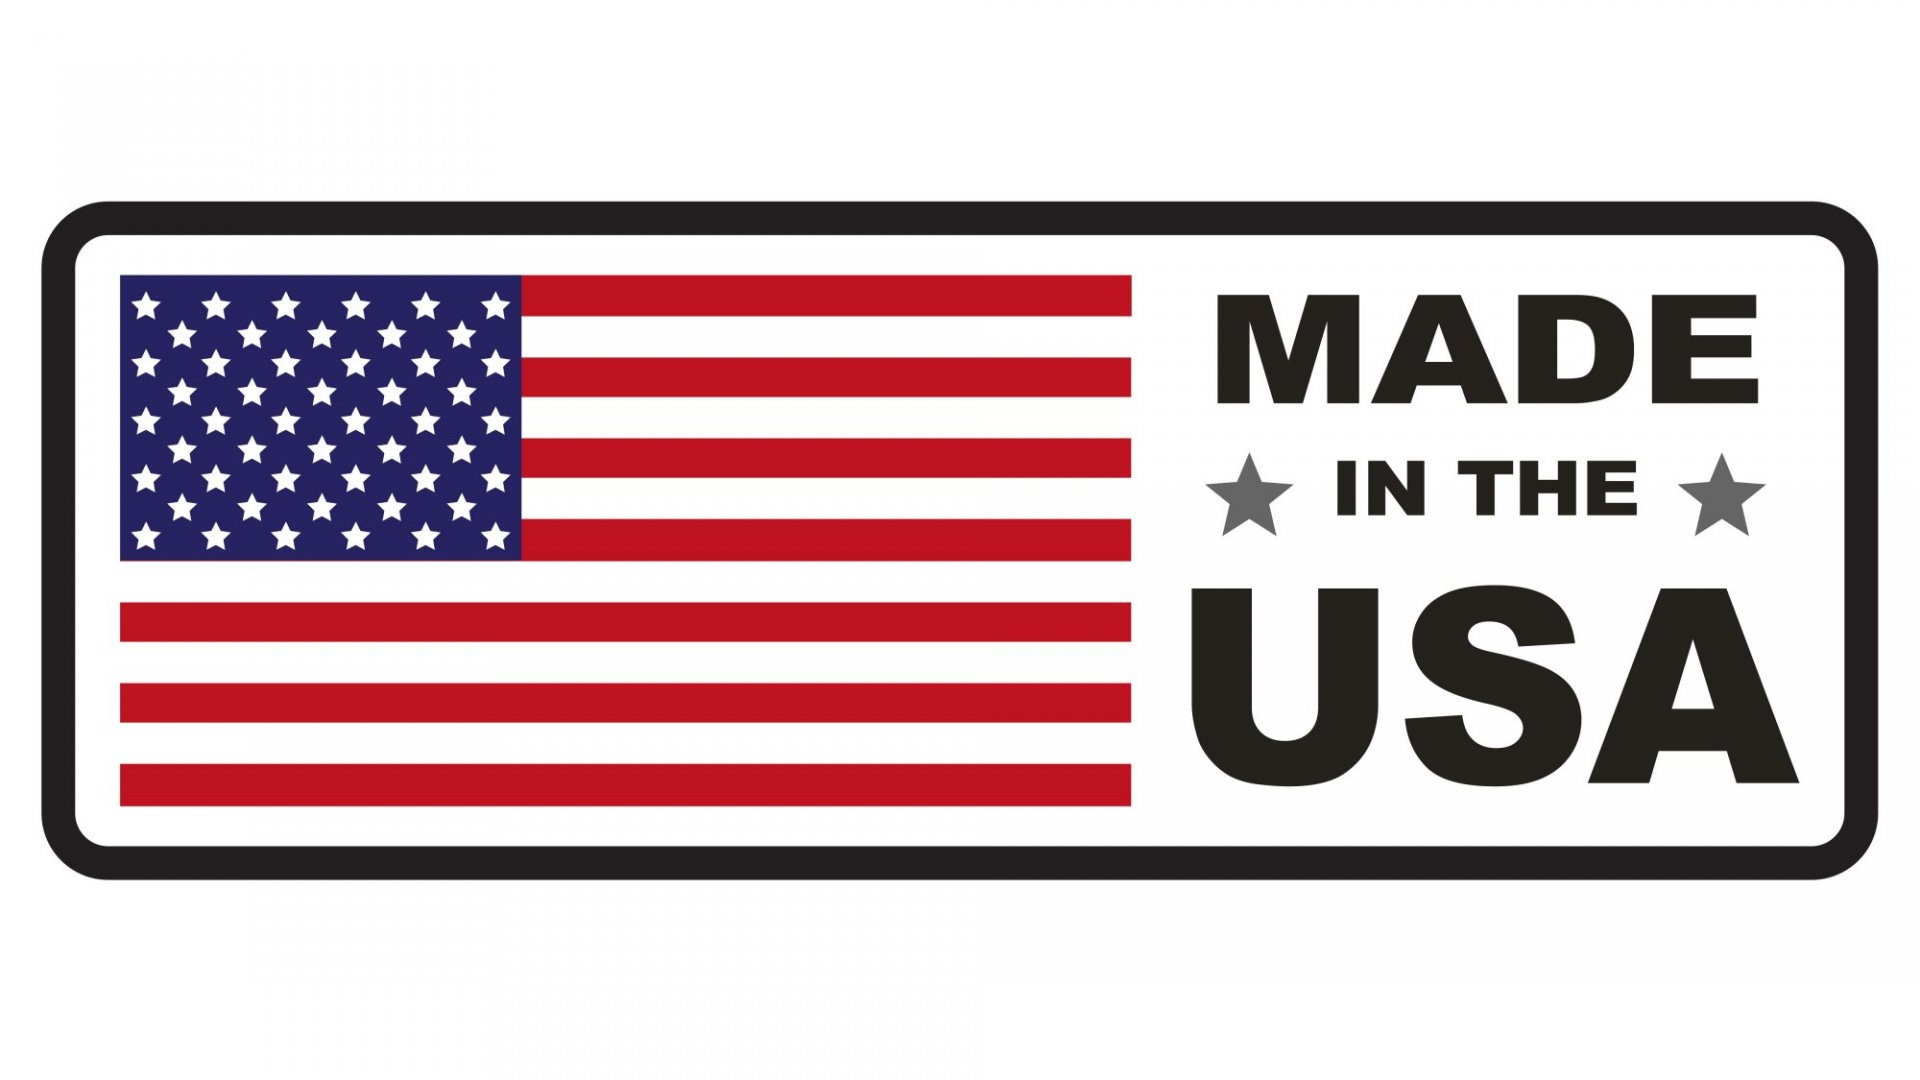 What the Made in America Movement Means for Marketers